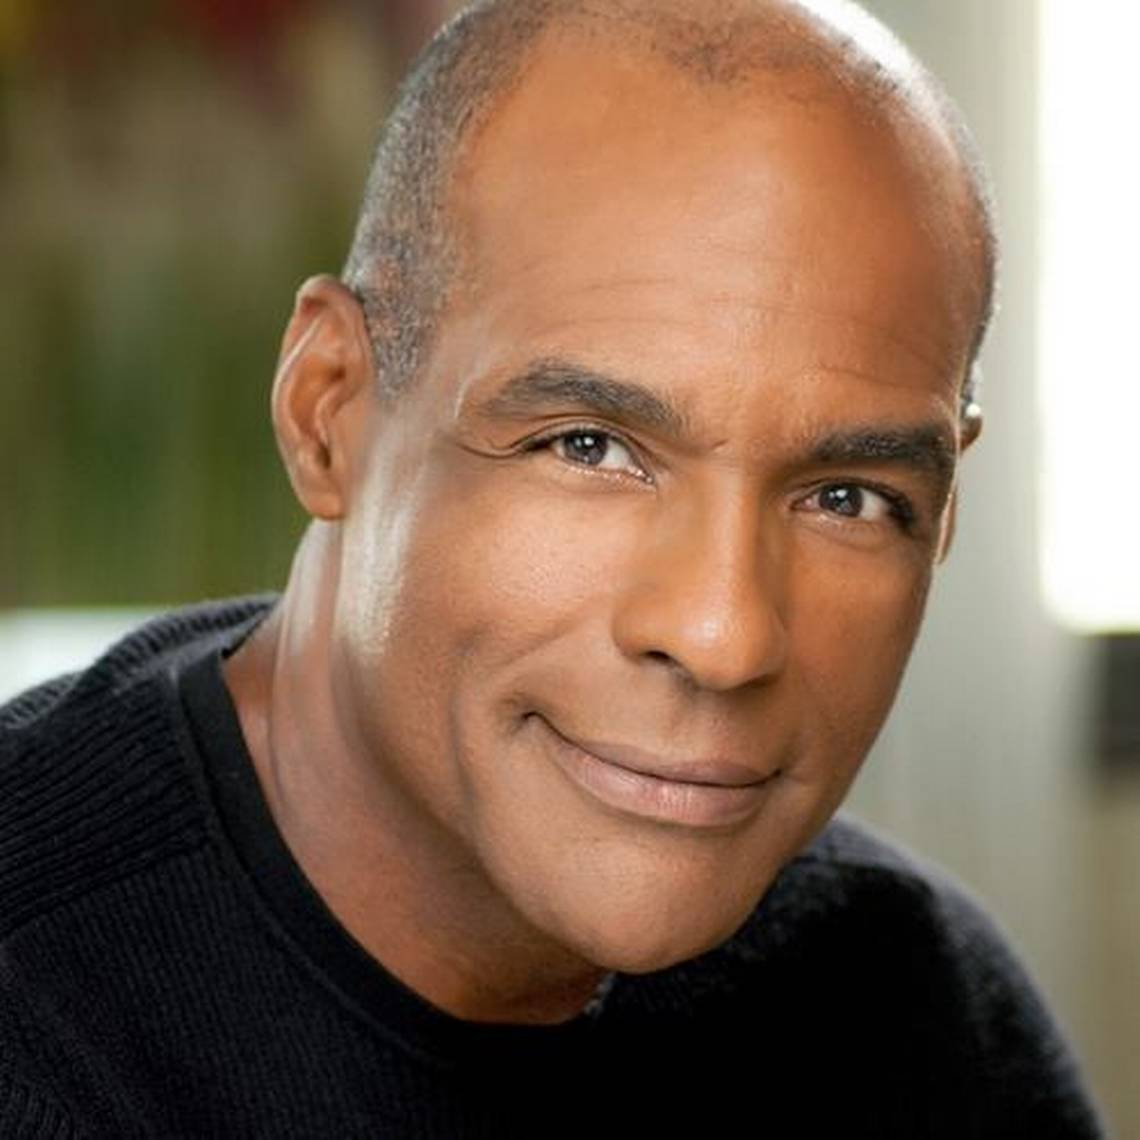 Michael Dorn, who has no connection to  Maxim Ultra  outside my imagination.